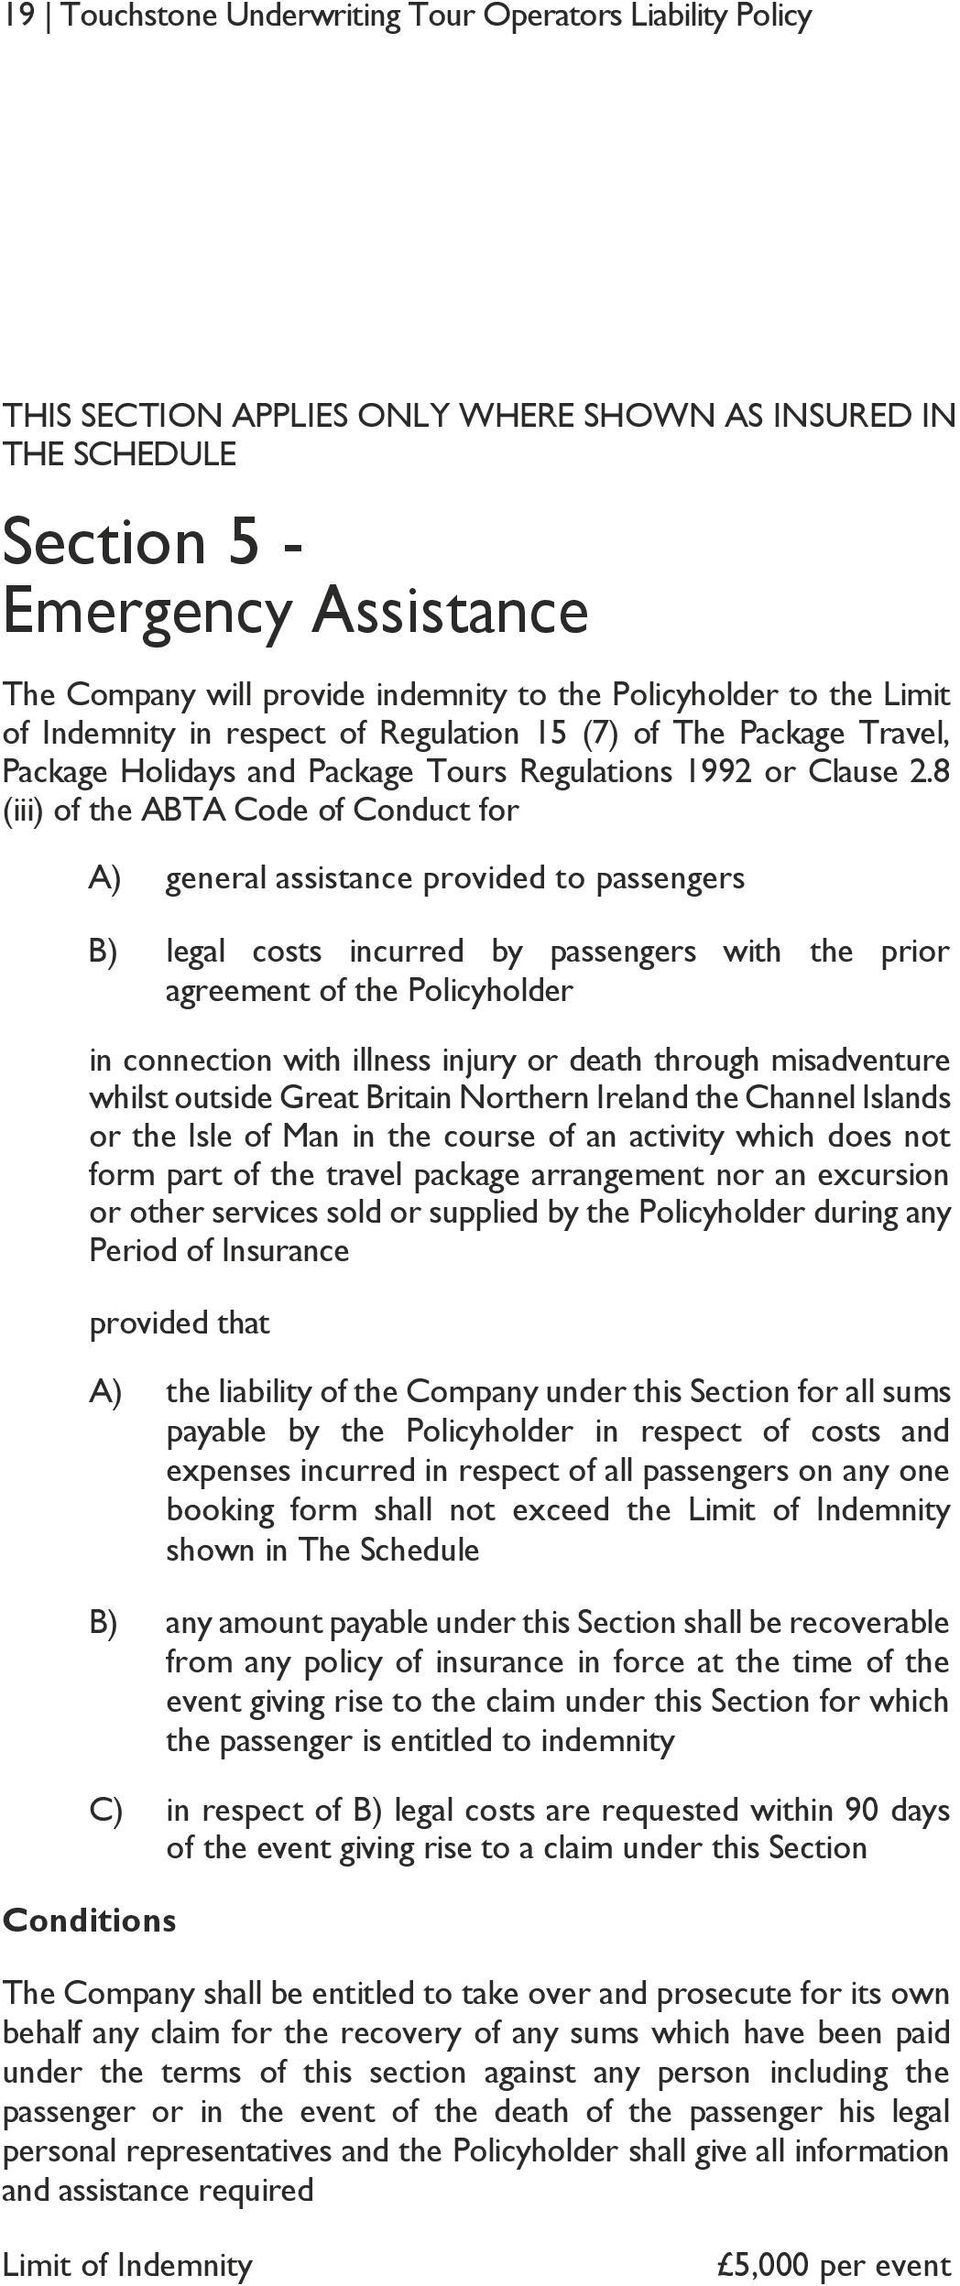 8 (iii) of the ABTA Code of Conduct for A) general assistance provided to passengers B) legal costs incurred by passengers with the prior agreement of the Policyholder in connection with illness